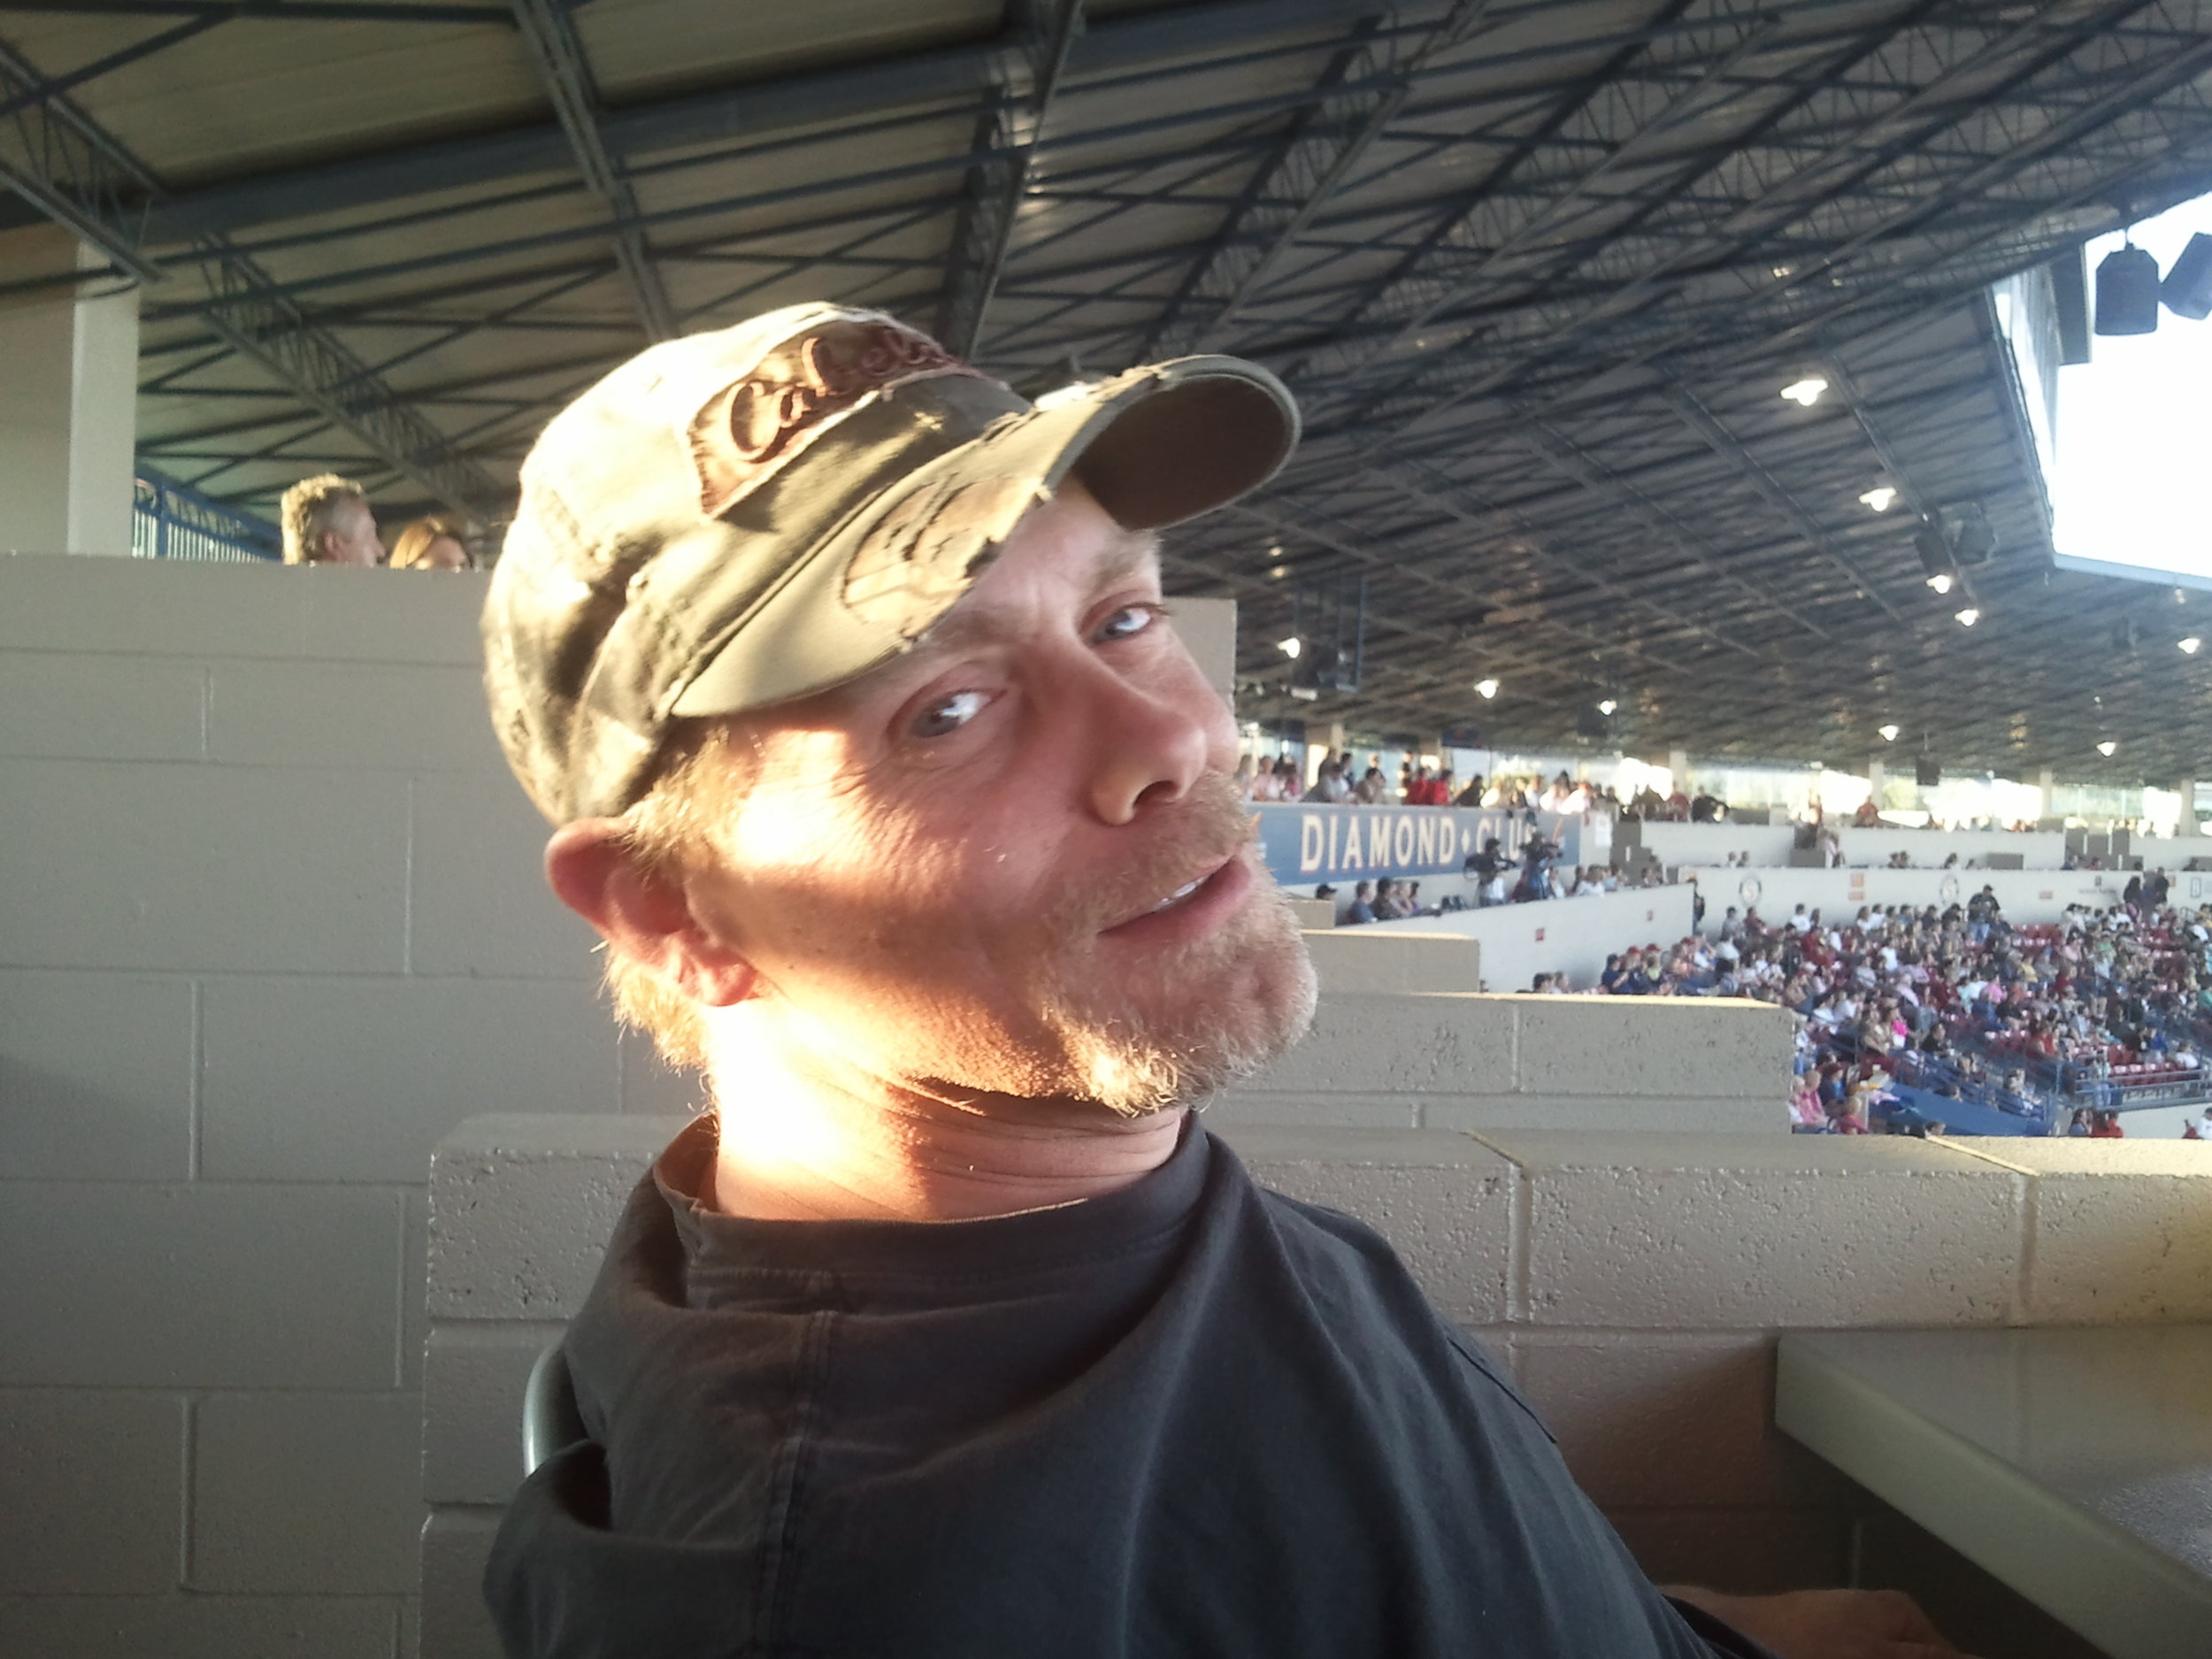 The arcade experience page is dedicated to my friend, Steve Flock, 1968 - 2012